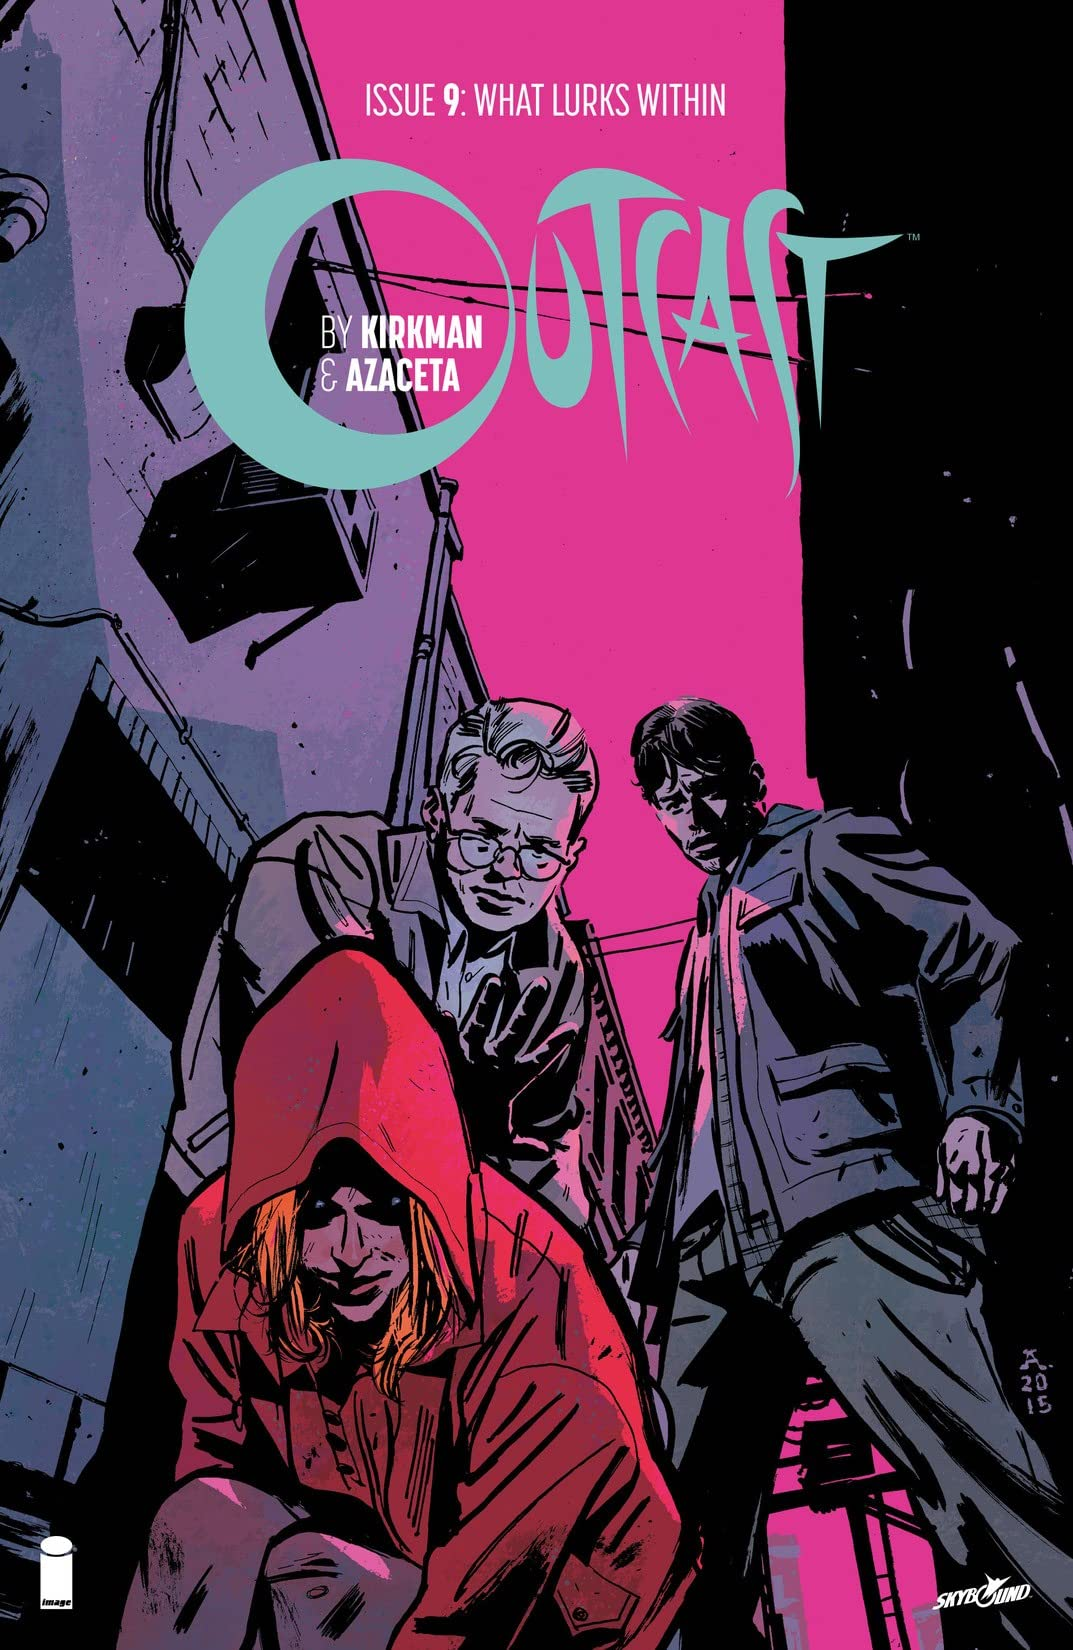 Outcast by Kirkman & Azaceta #9